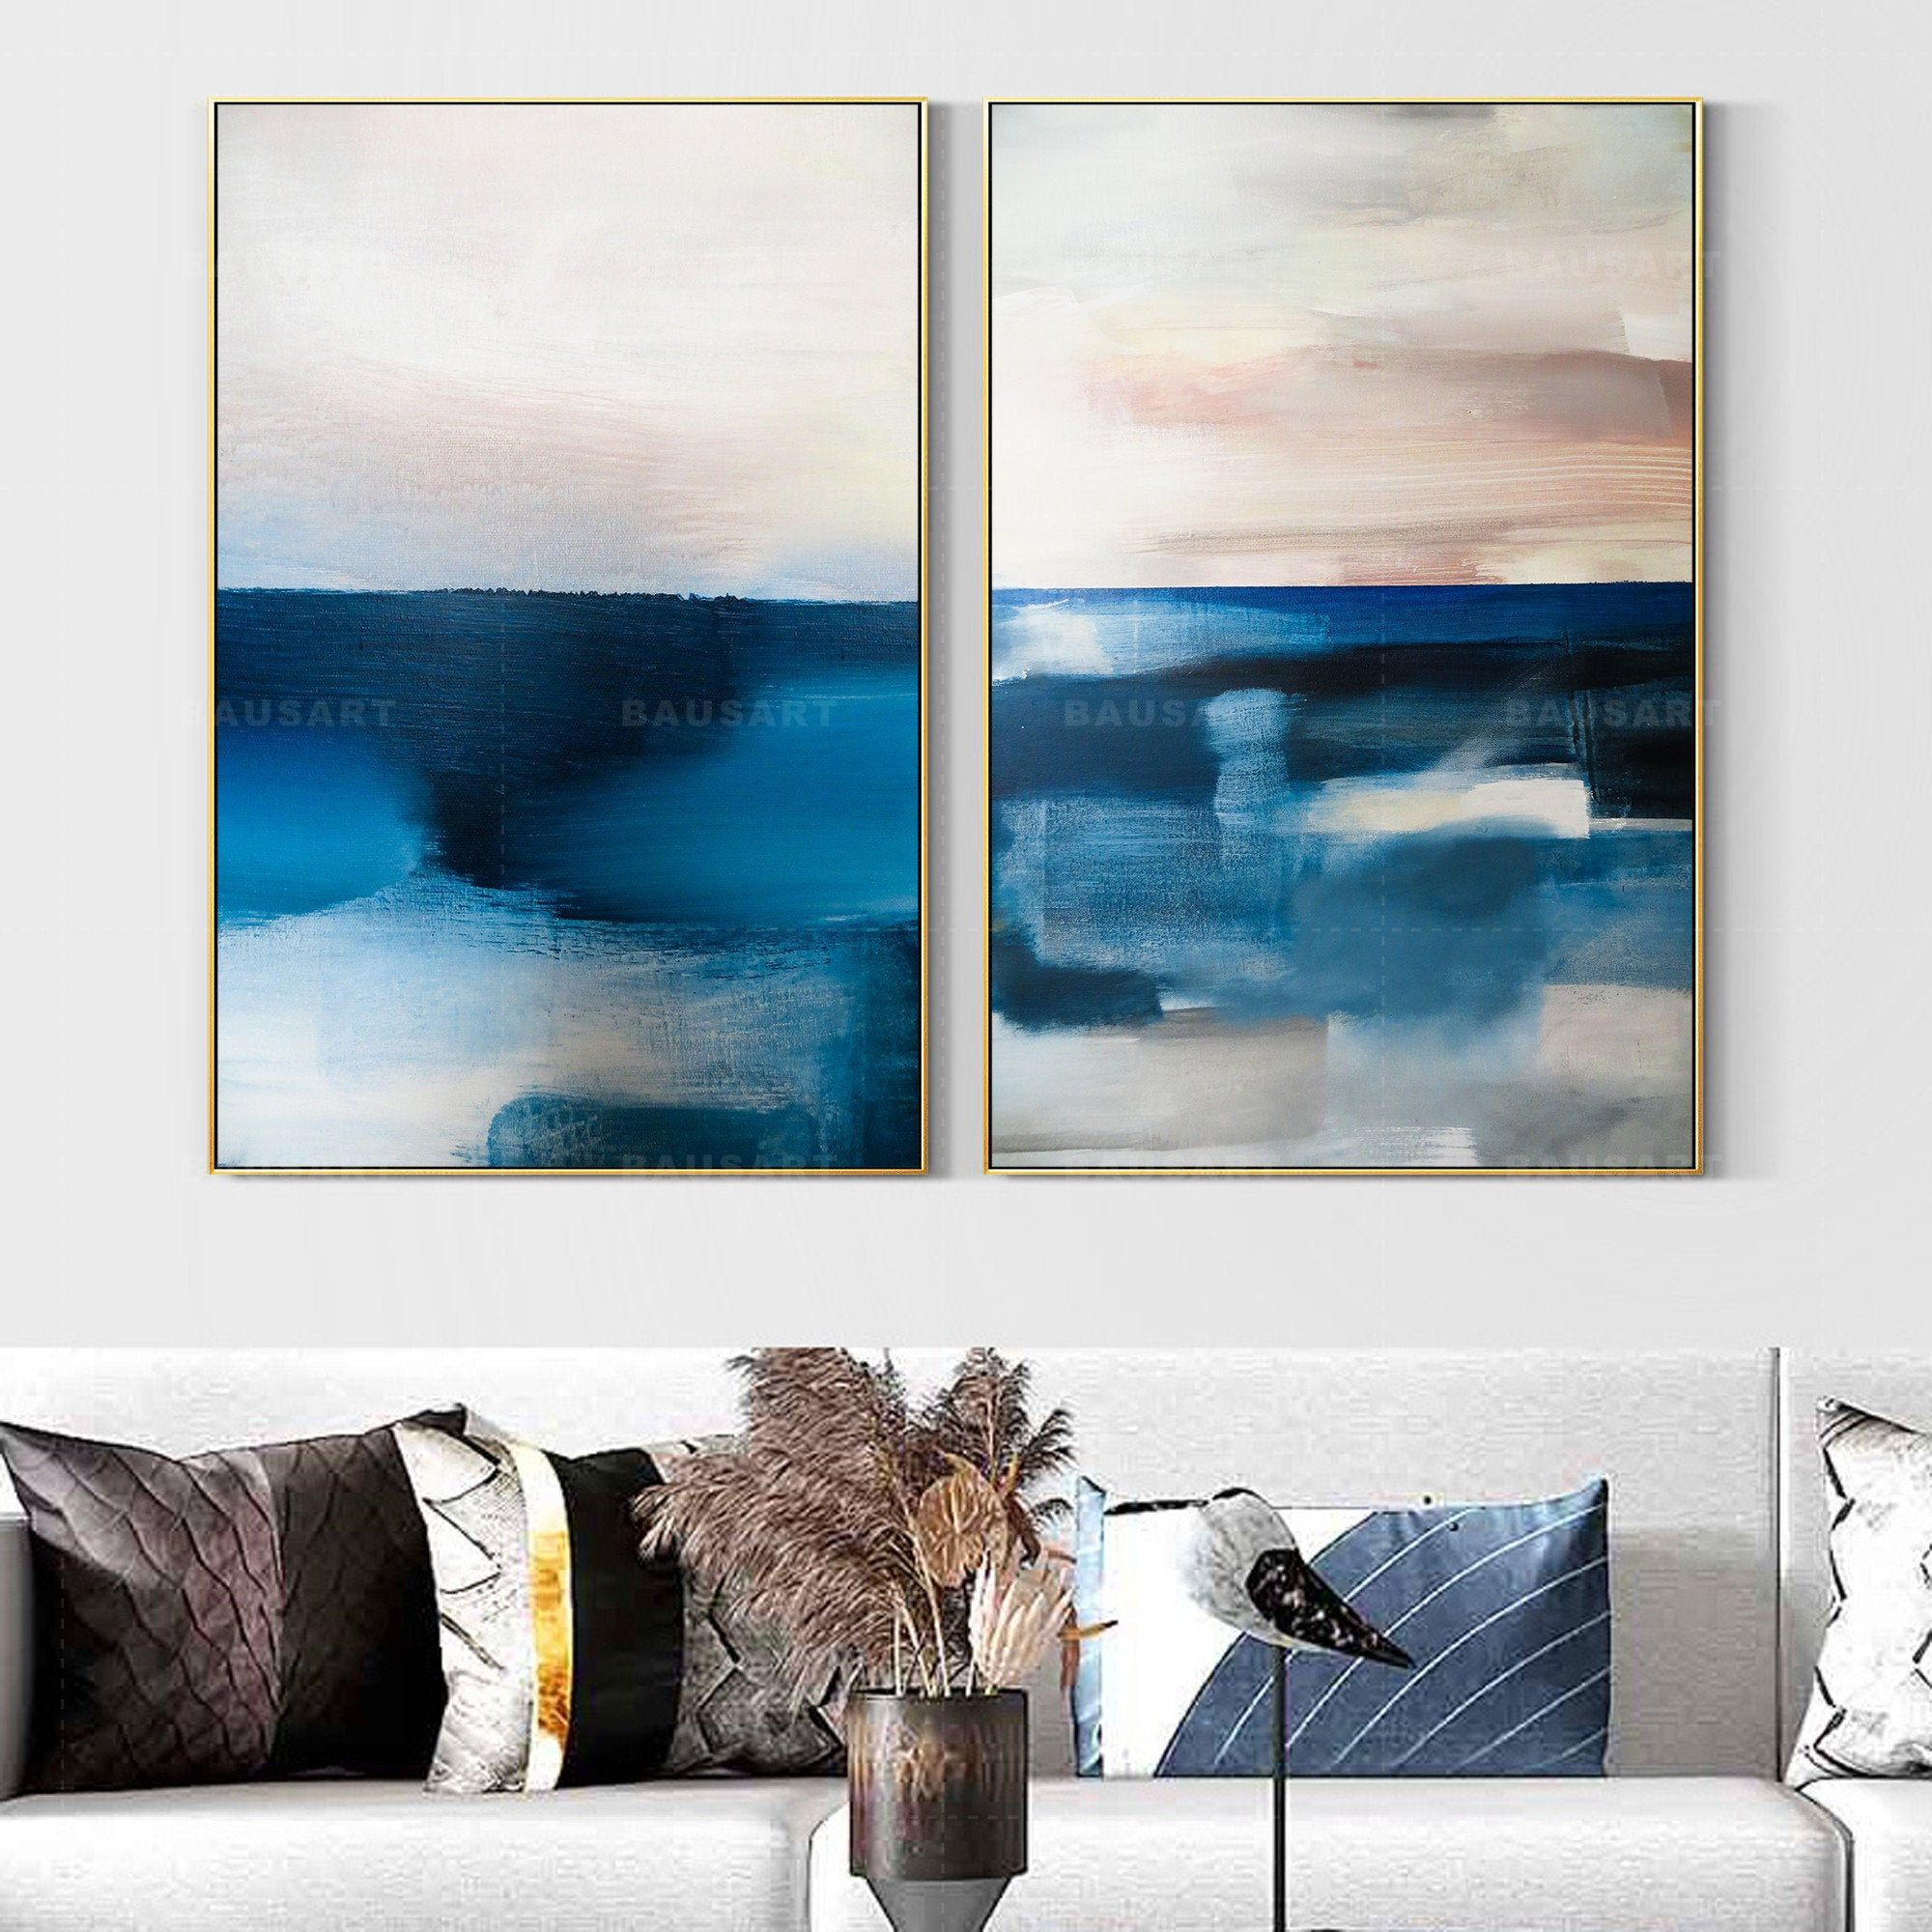 Framed Wall Art Set Of 2 Prints Abstract Blue Print Painting Etsy Frames On Wall Landscape Wall Art Wall Art Sets